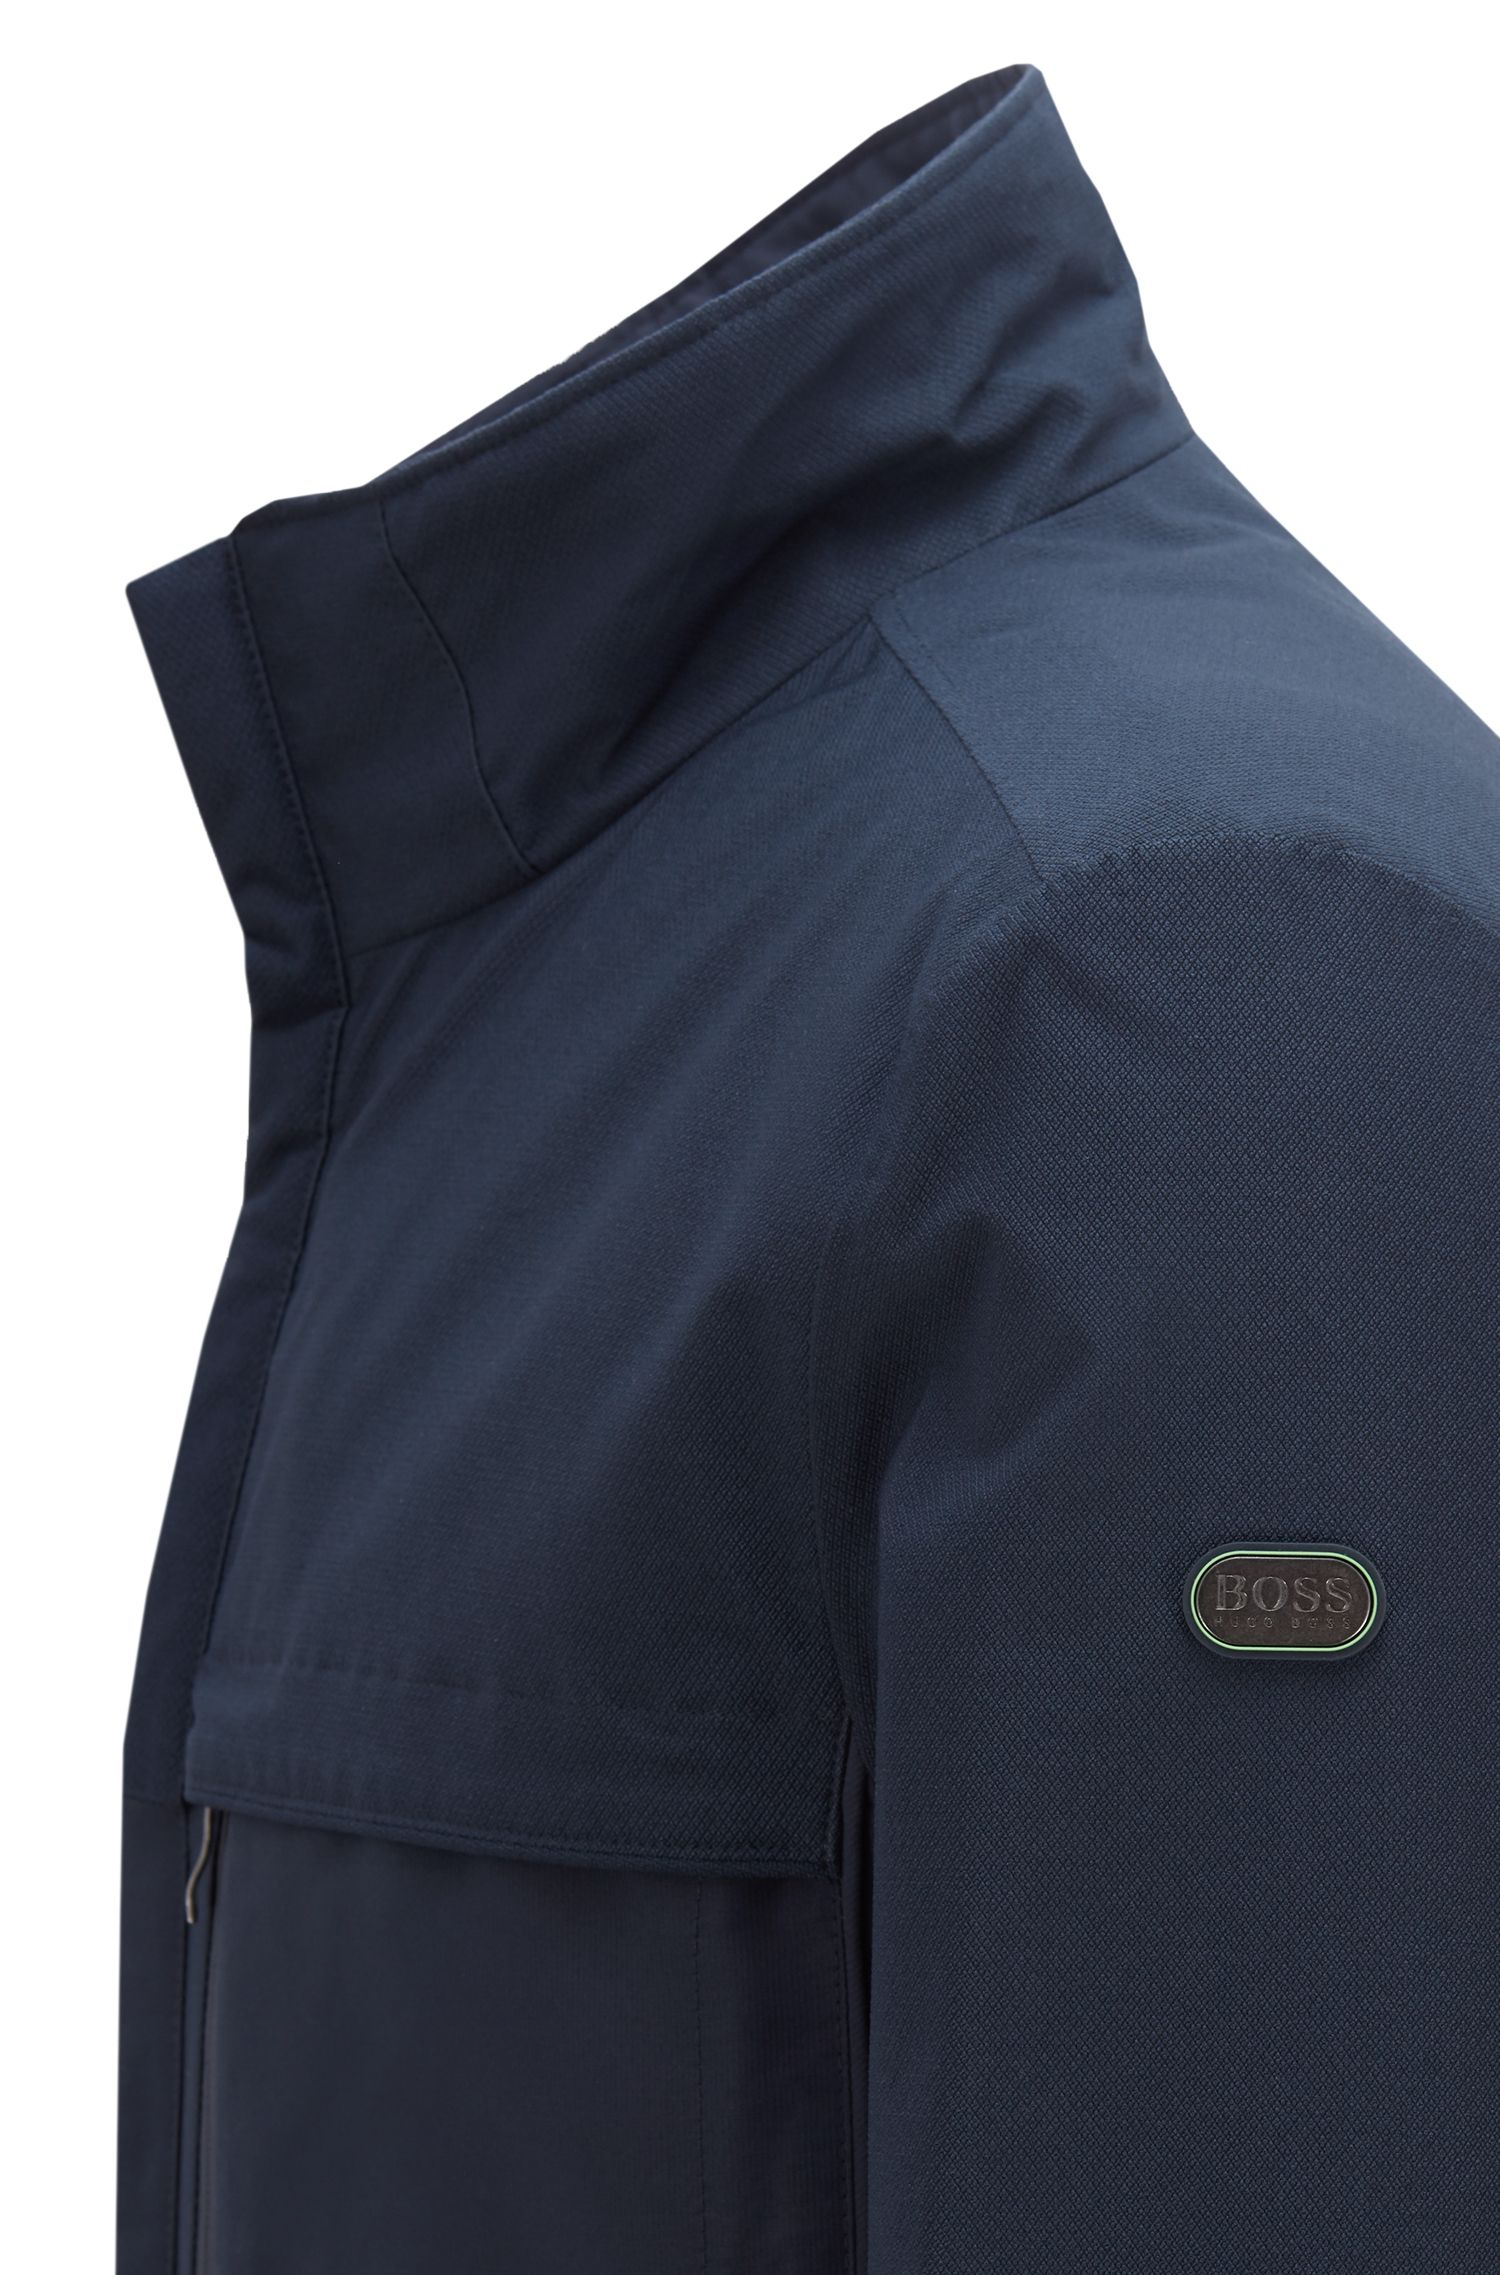 Link2 hooded jacket with electromagnetic-wave blocker